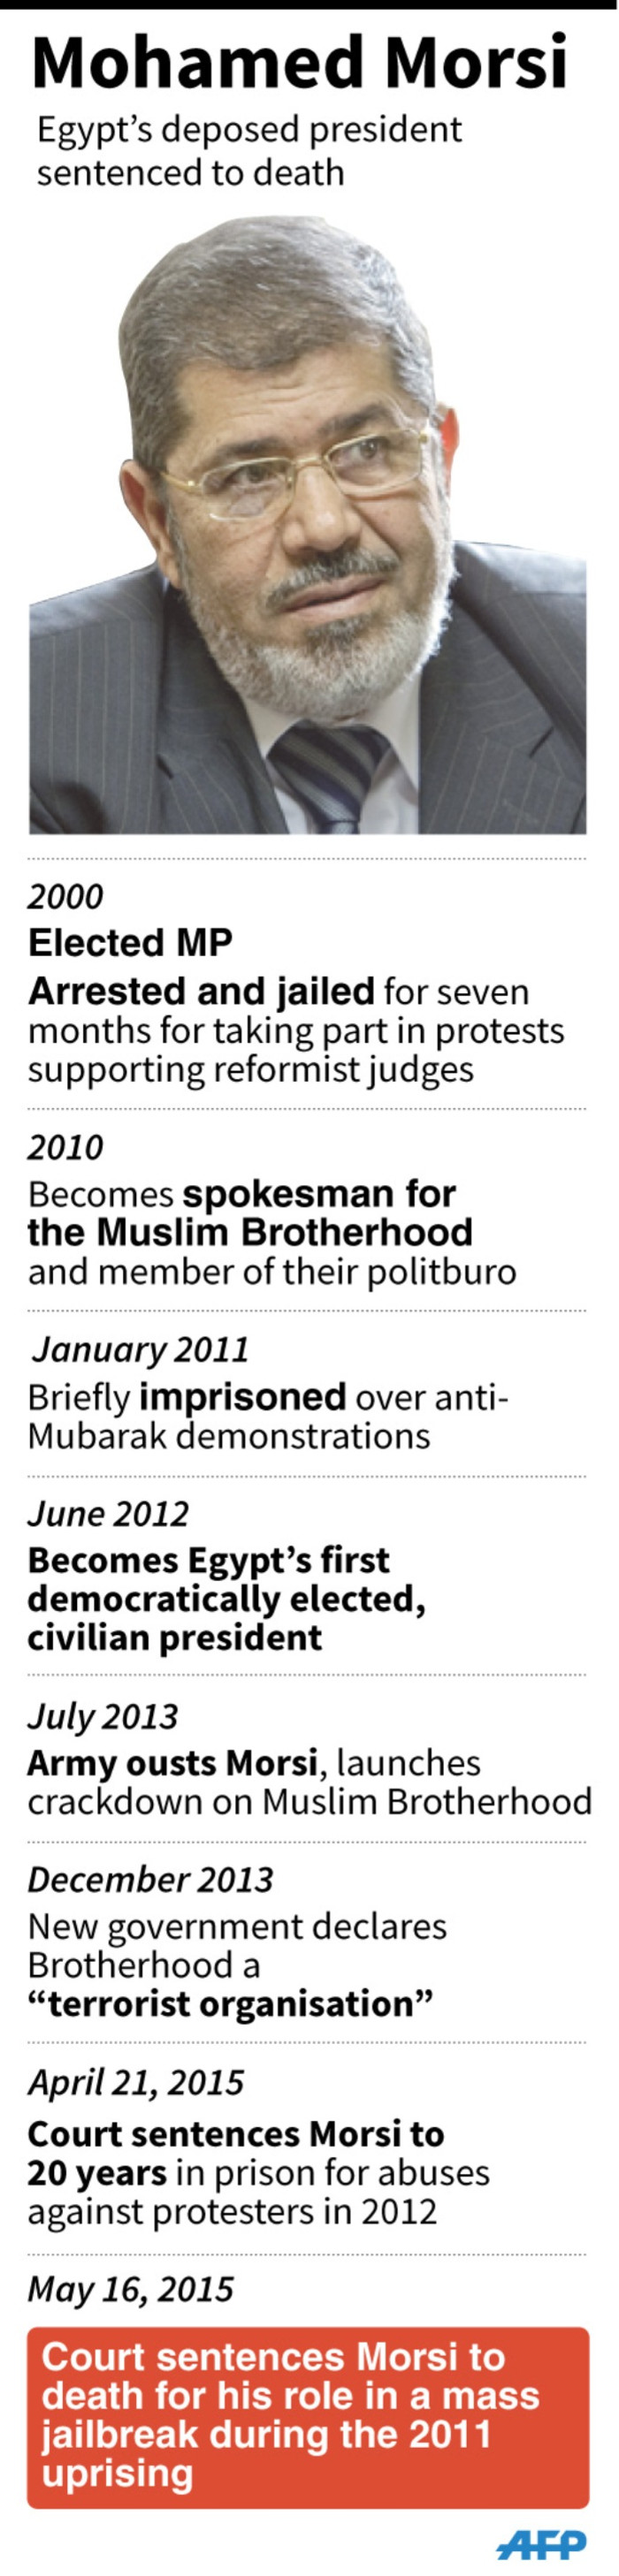 Profile of Egypts deposed president, sentenced to death for his role in a mass jailbreak during the 2011 uprising.